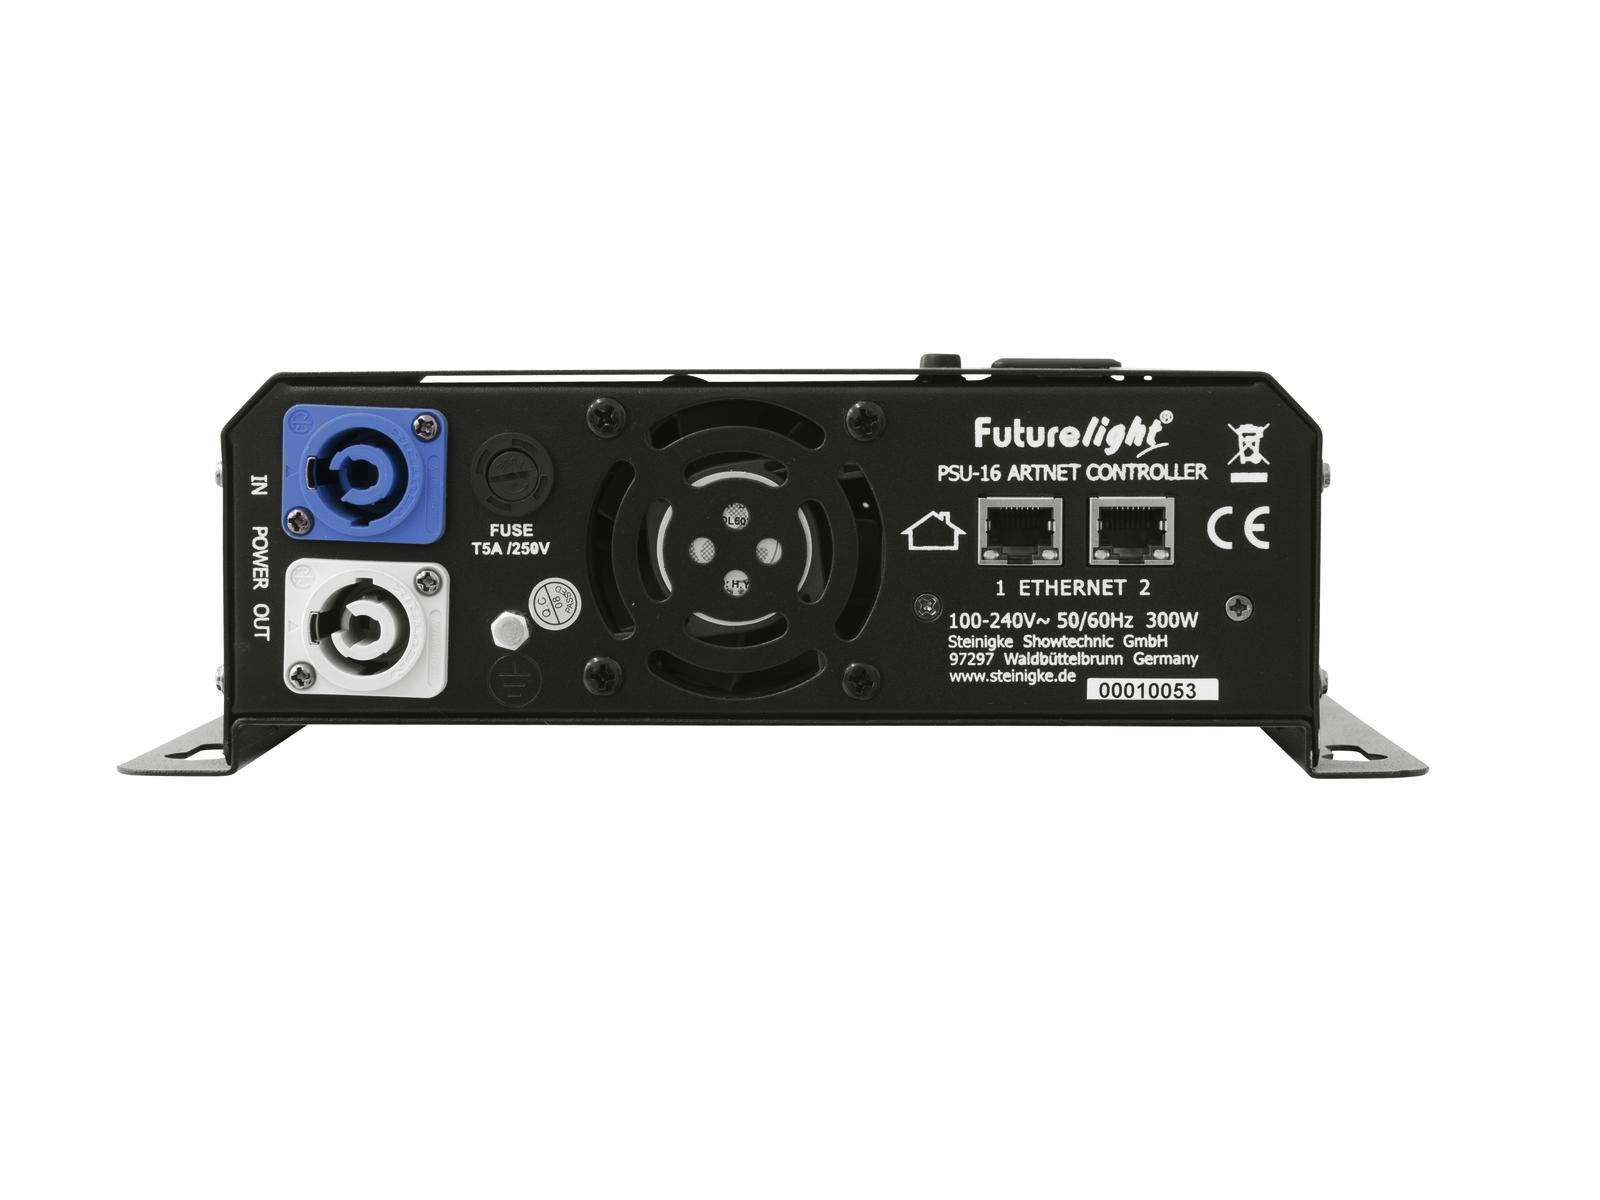 FUTURELIGHT PSU-16 Artnet